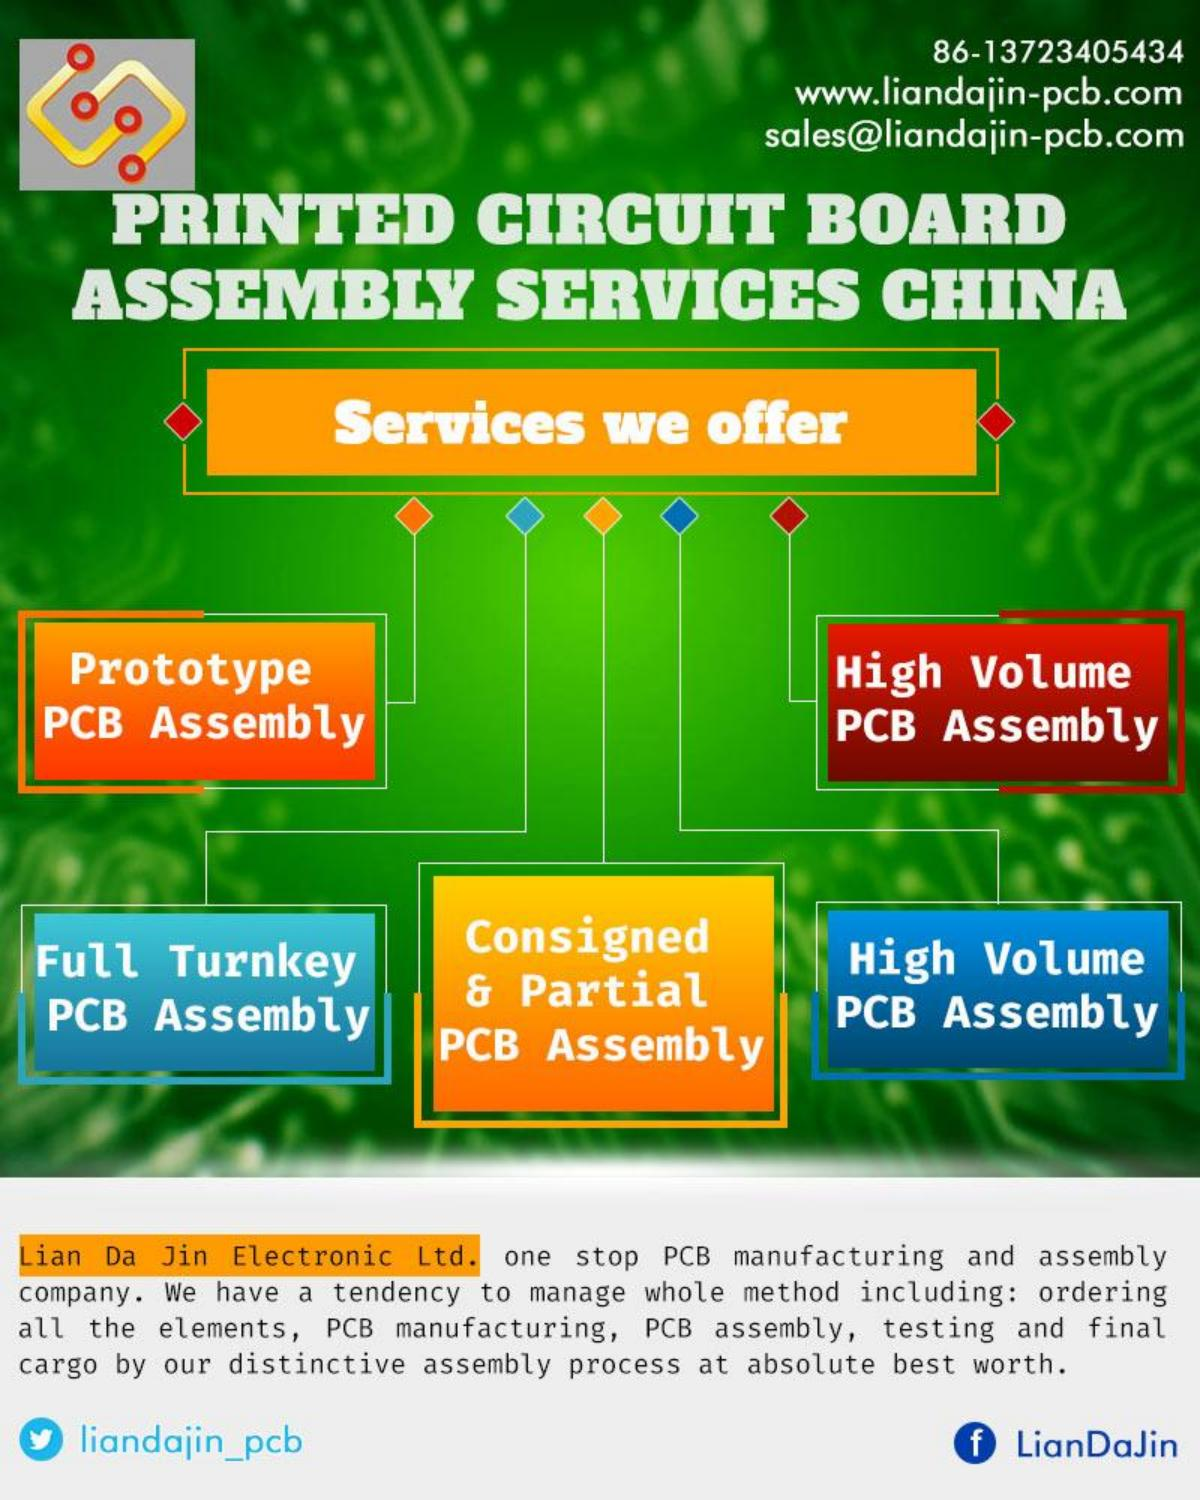 Printed Circuit Board Assembly Services China By Lian Da Jin Electronic Ltd Issuu